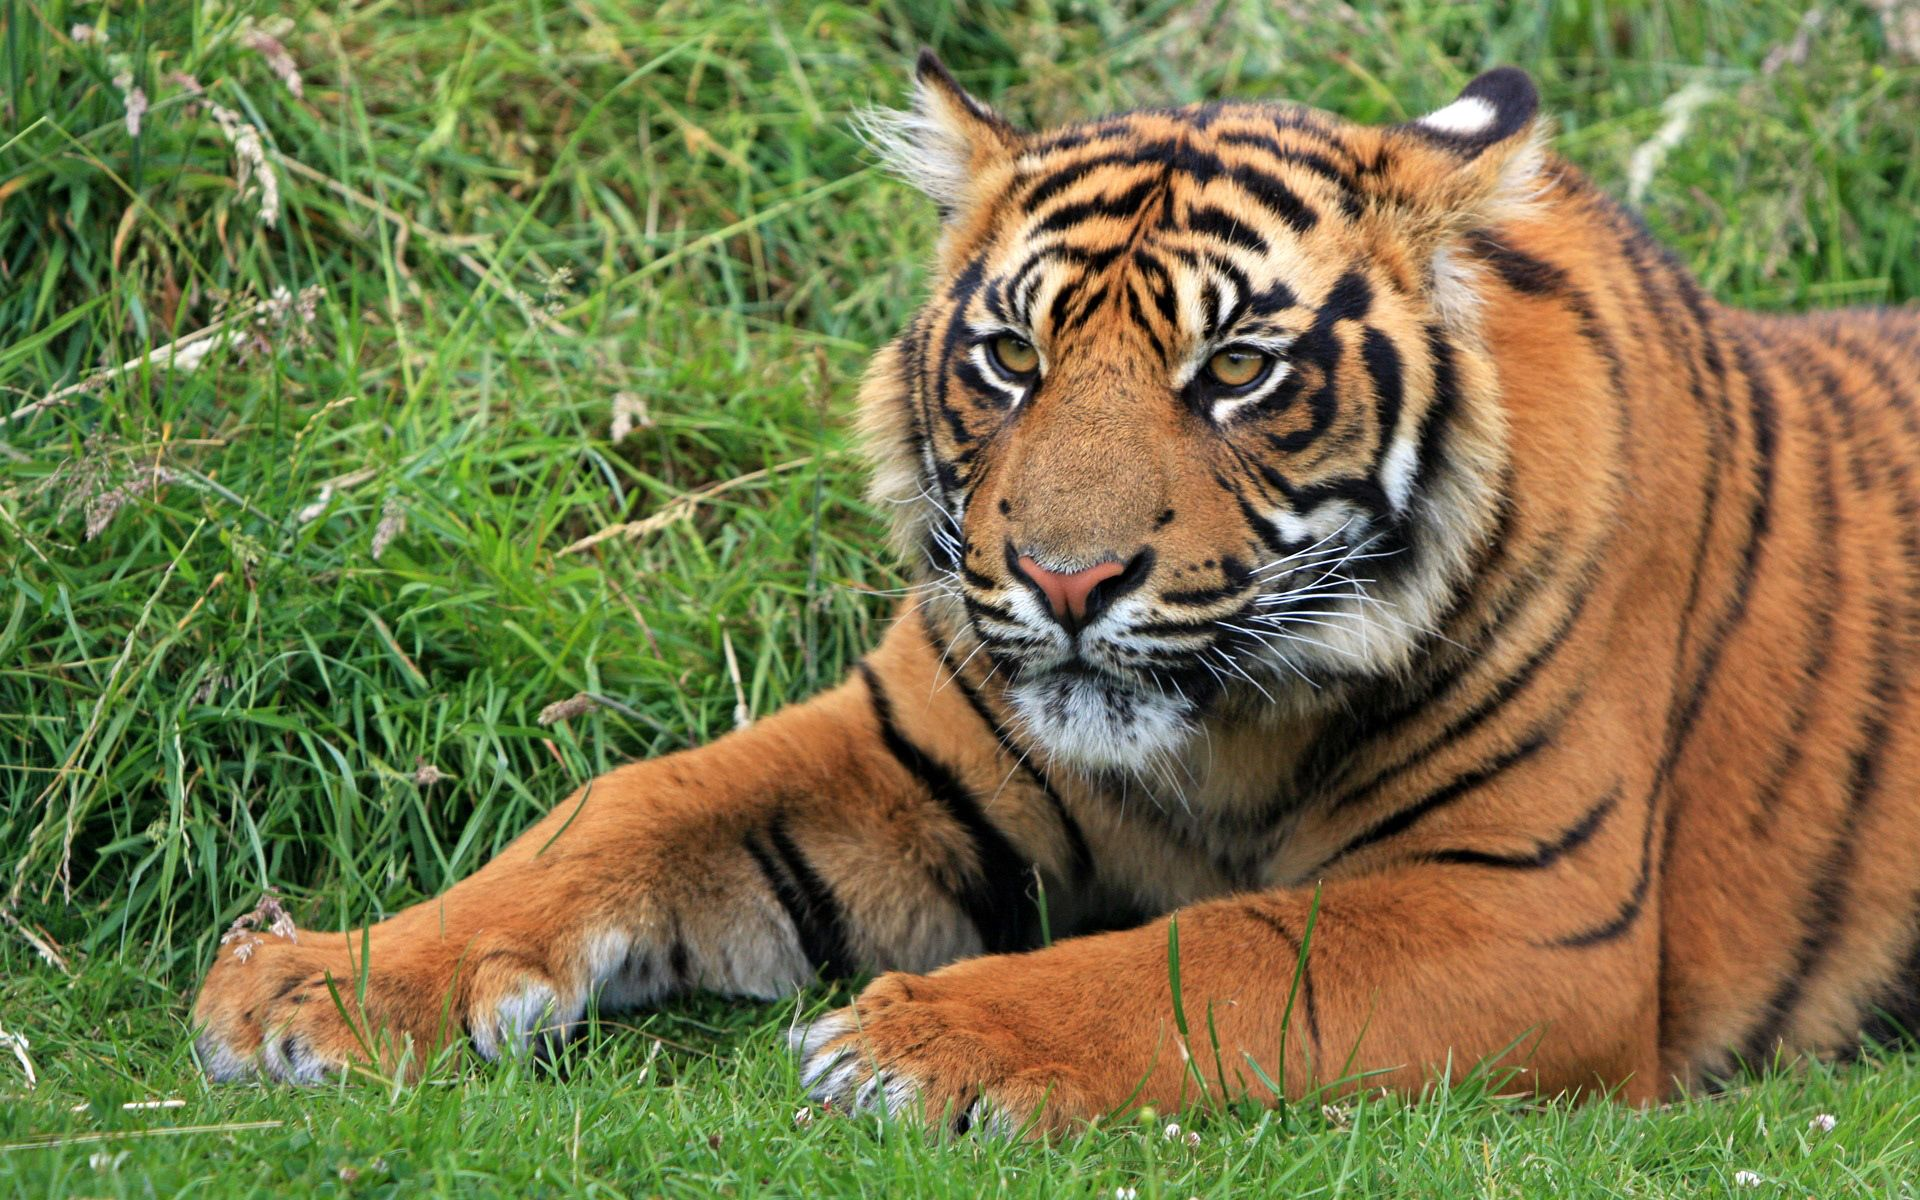 rocking tiger wallpapers cool tiger images free download page 1920